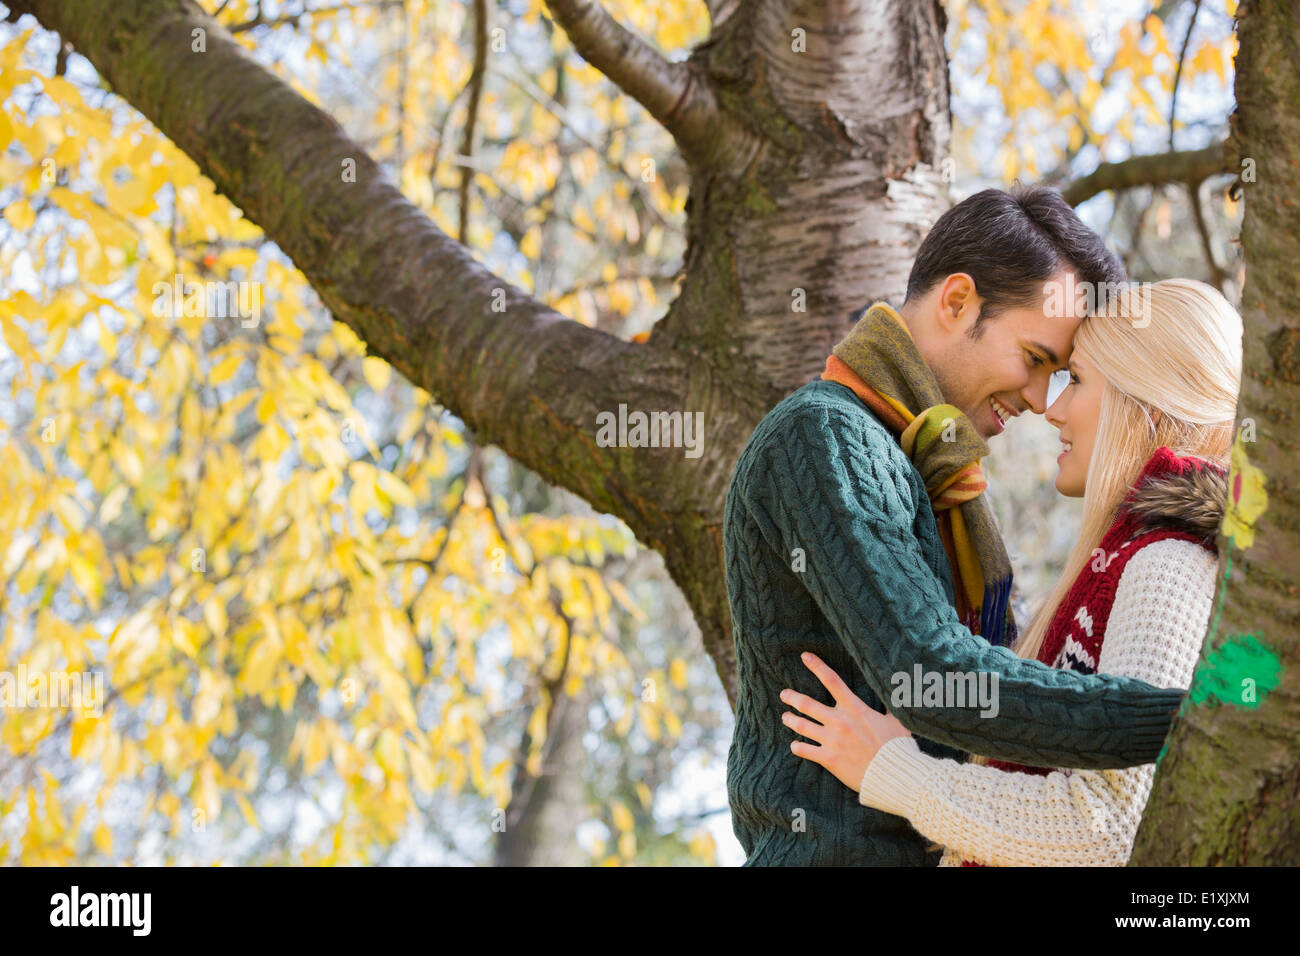 Side view of young couple hugging near autumn tree in park - Stock Image